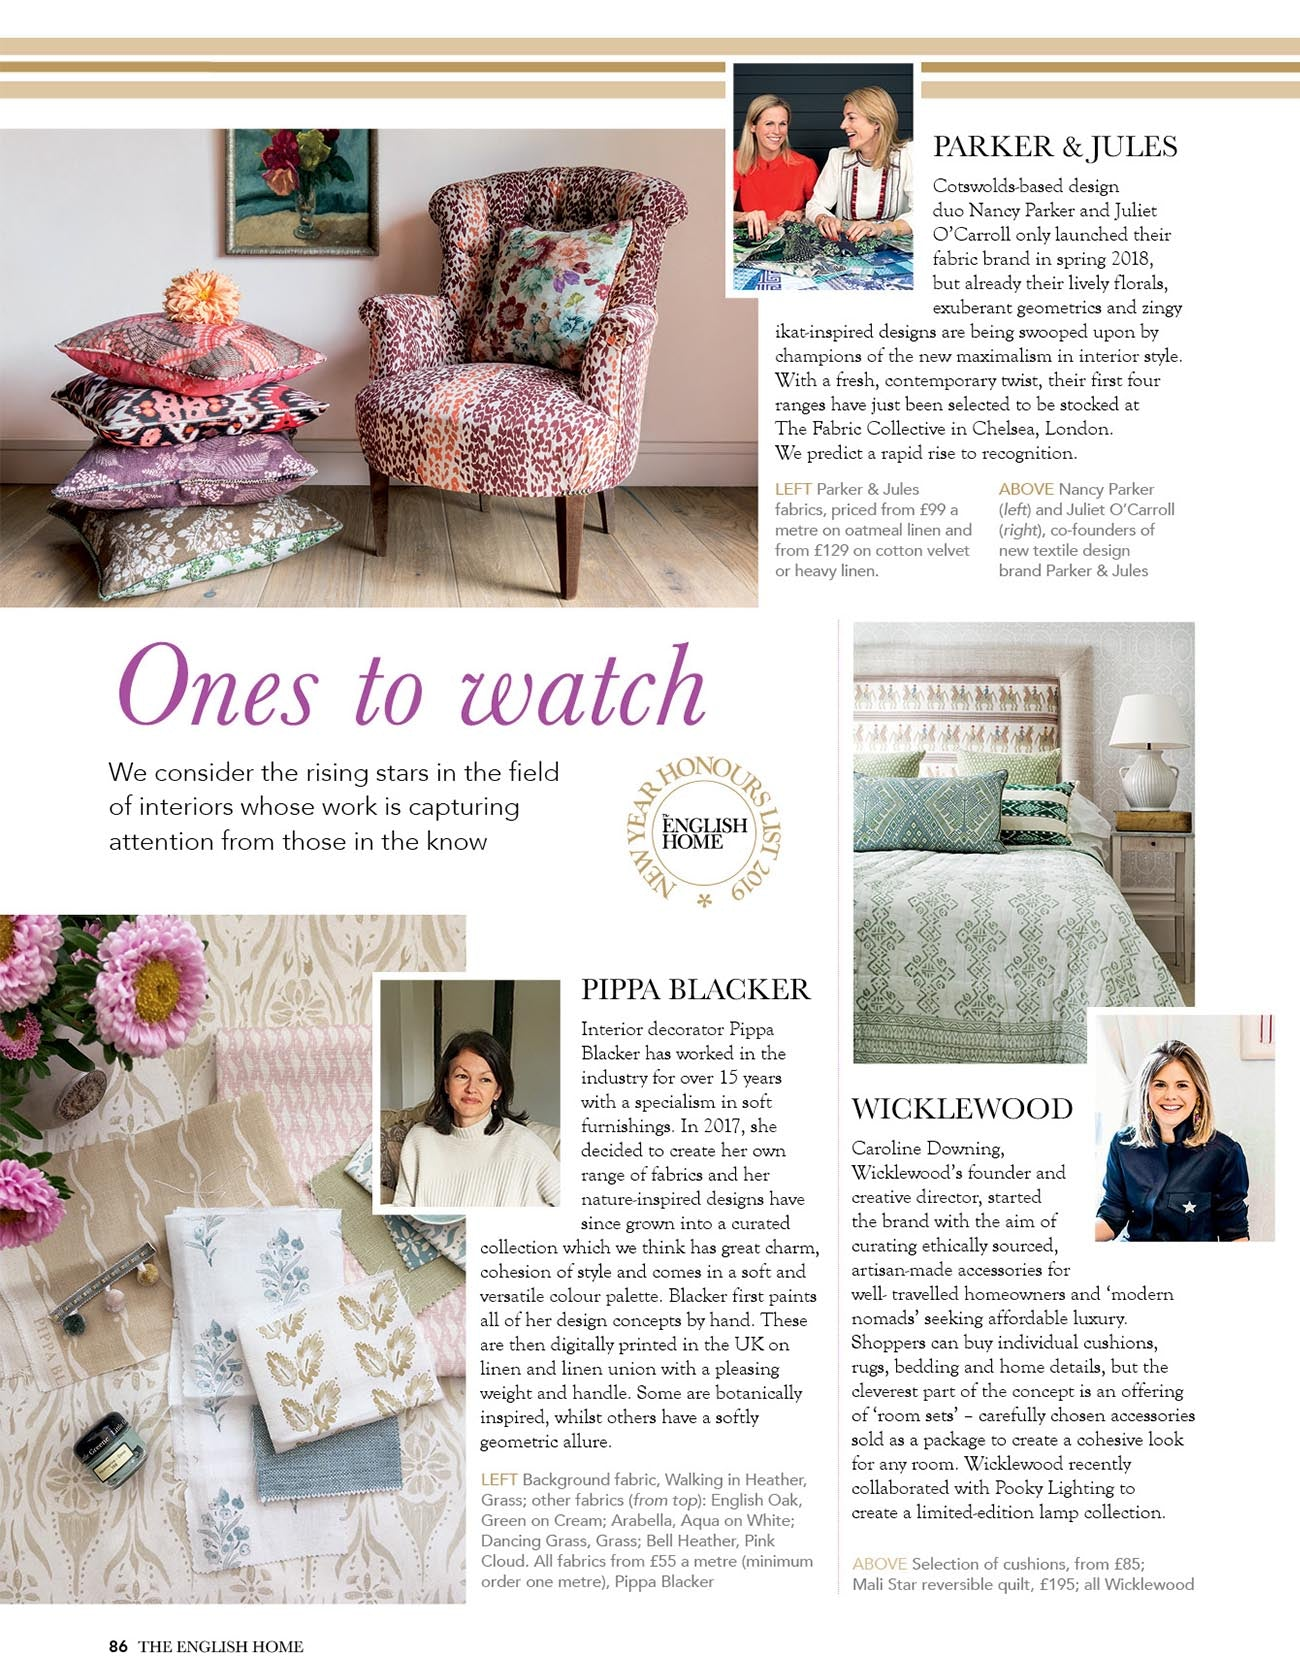 The English Home Magazine, New Year's Honours Awards: One's to Watch winner is Wicklewood luxury home furnishings brand.